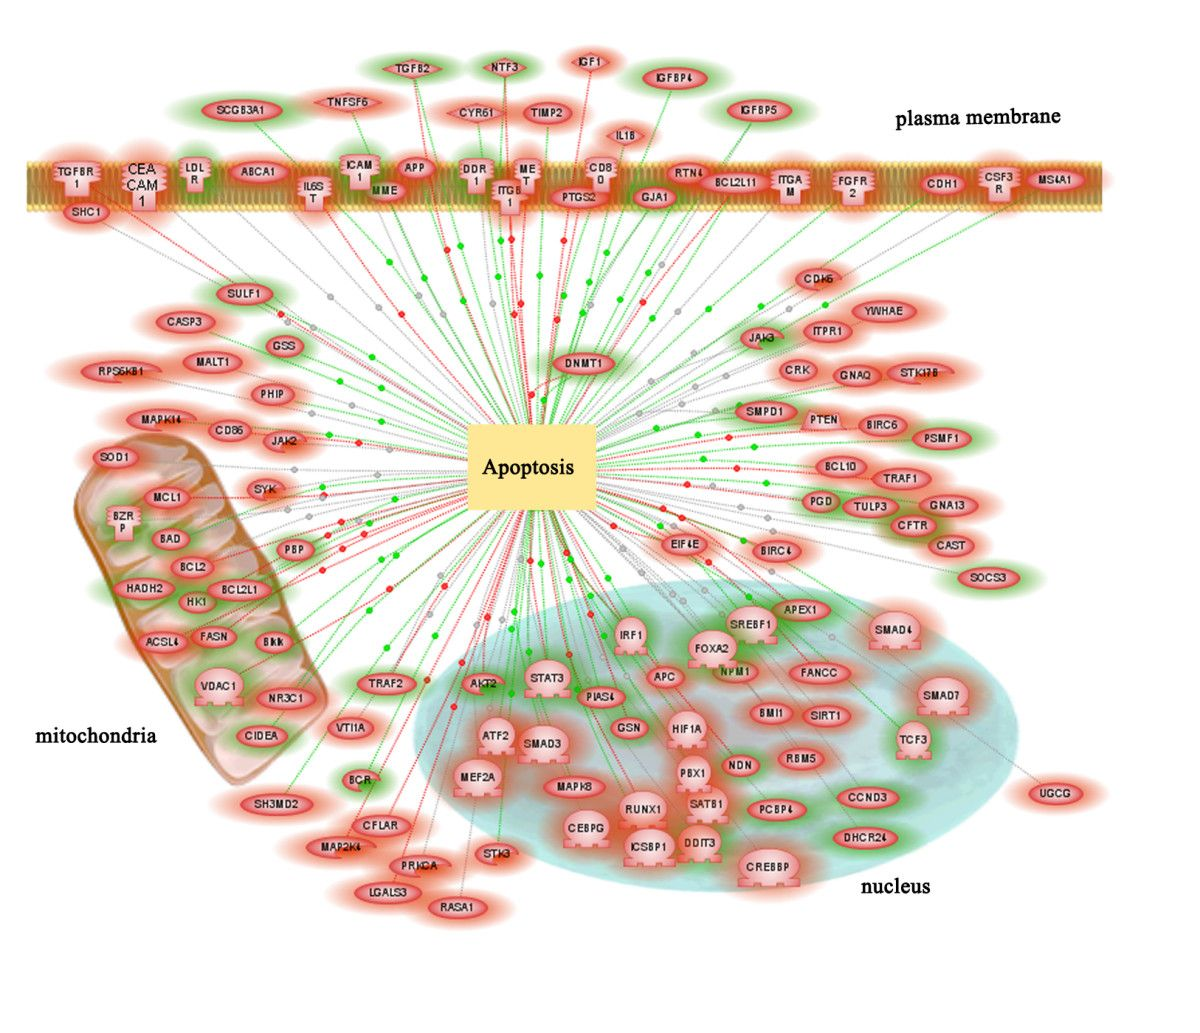 Genes Involved In Apoptotic Pathways Gene Expression Plasma